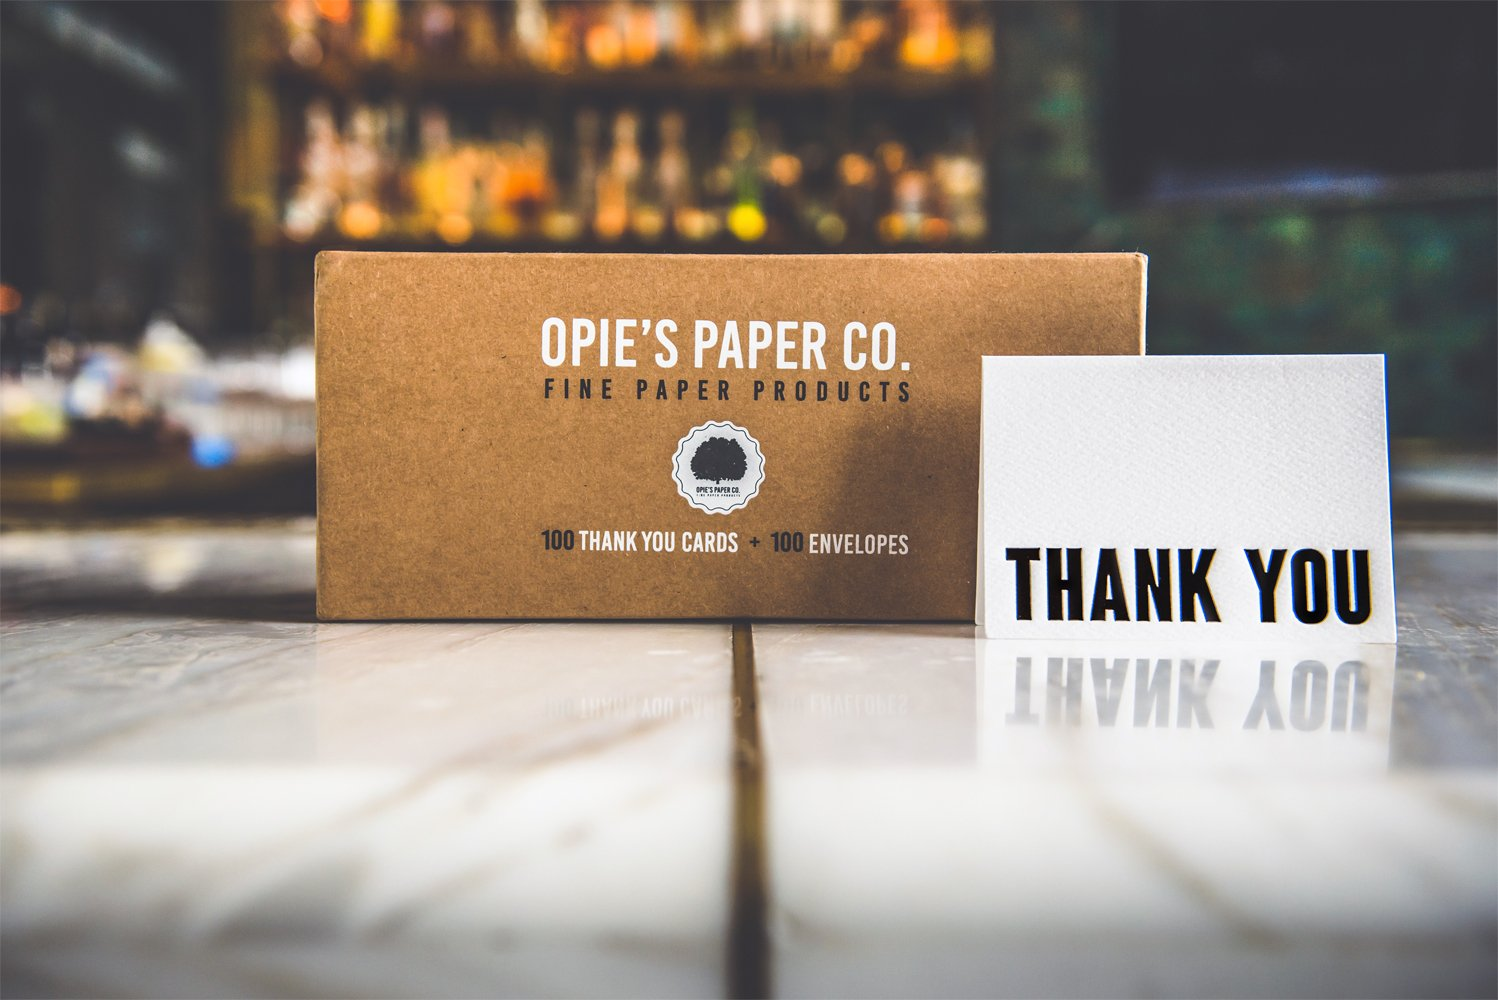 100 Letterpress Thank You Cards and Self Seal Envelopes. Perfect for Graduation, Business, Weddings - Opie's Paper Company (Black & White) by Opie's Paper Co.